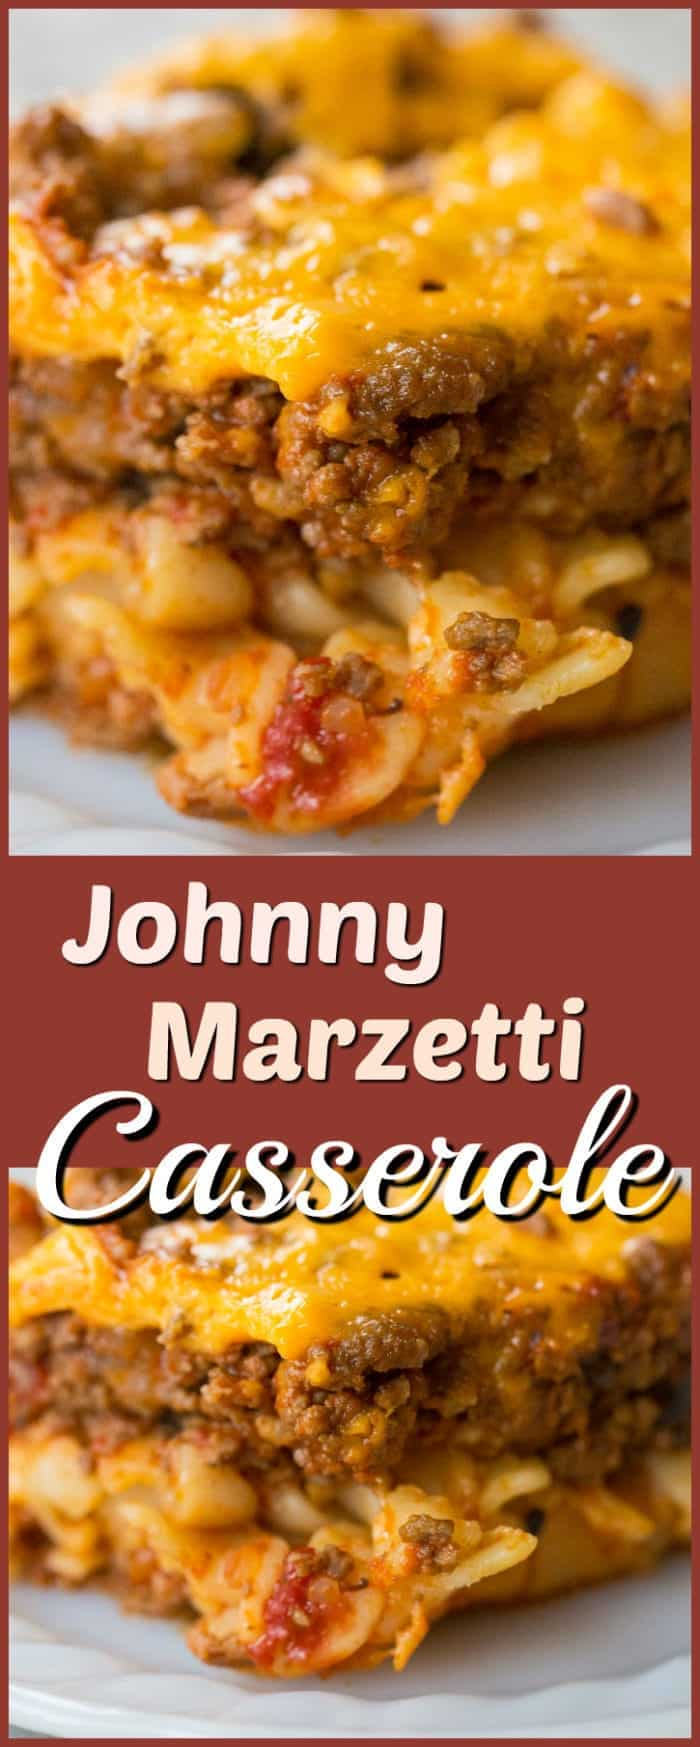 Johnny Marzetti Casserole (a delicious ground beef recipe) is a classic Midwest dish that is the perfect comfort food! Recipe from @kitchenmagpie. #recipe #casserole #beef #noodles #cheese #baked #dinner #supper #family #meals